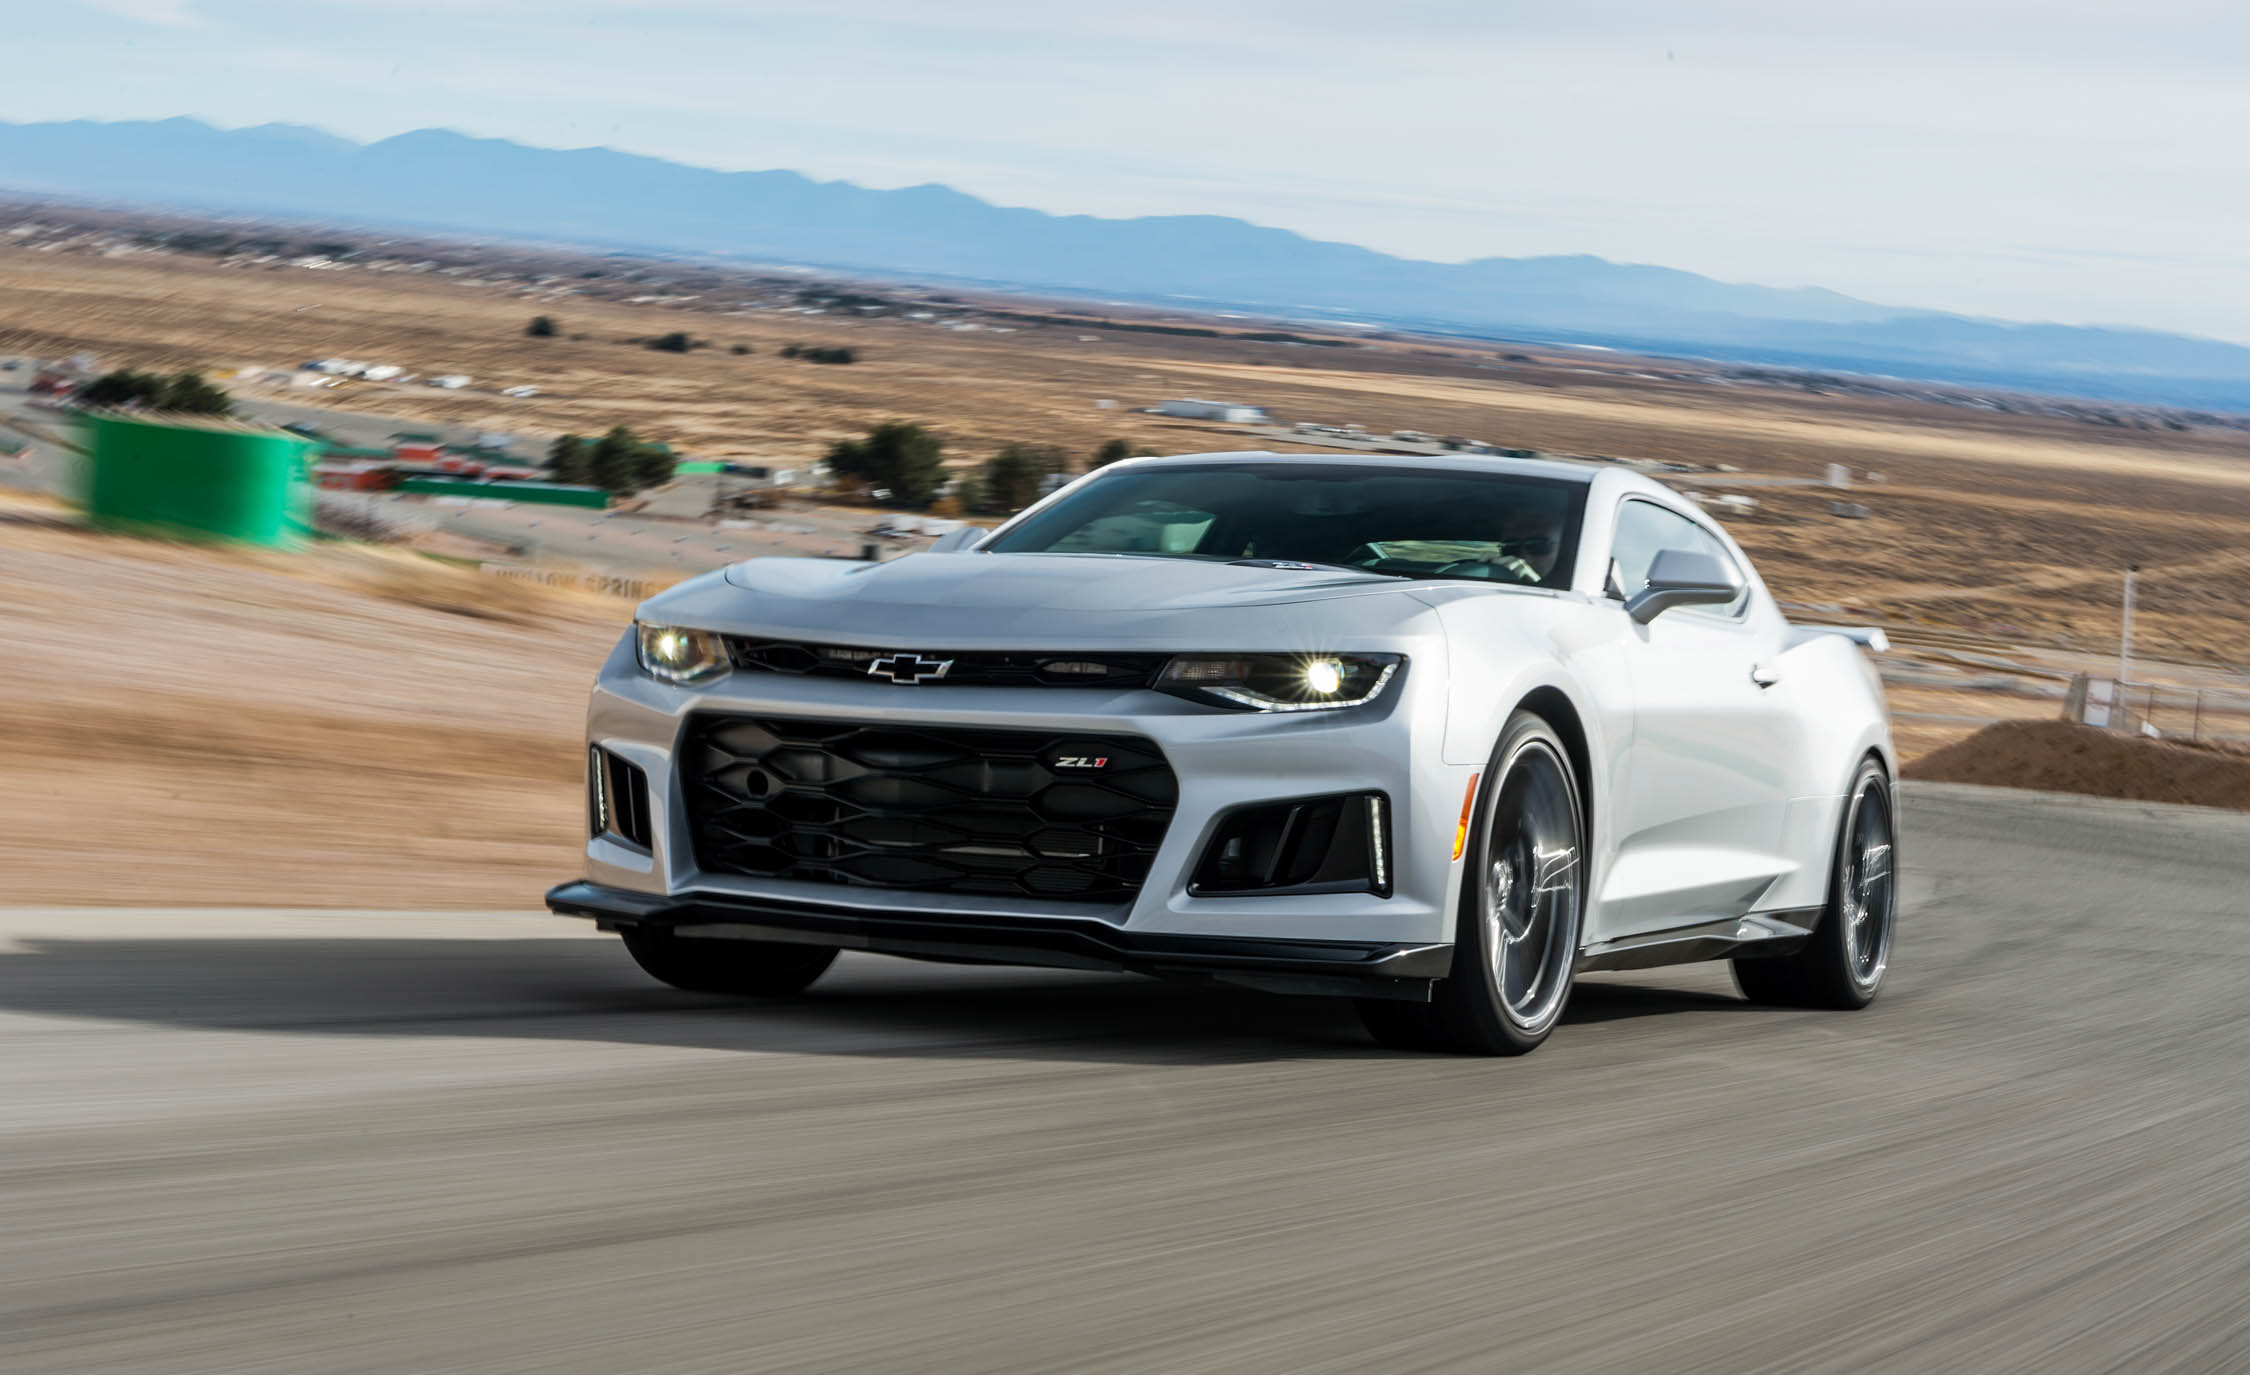 2017 Chevrolet Camaro ZL1 White Test Drive (Photo 59 of 62)